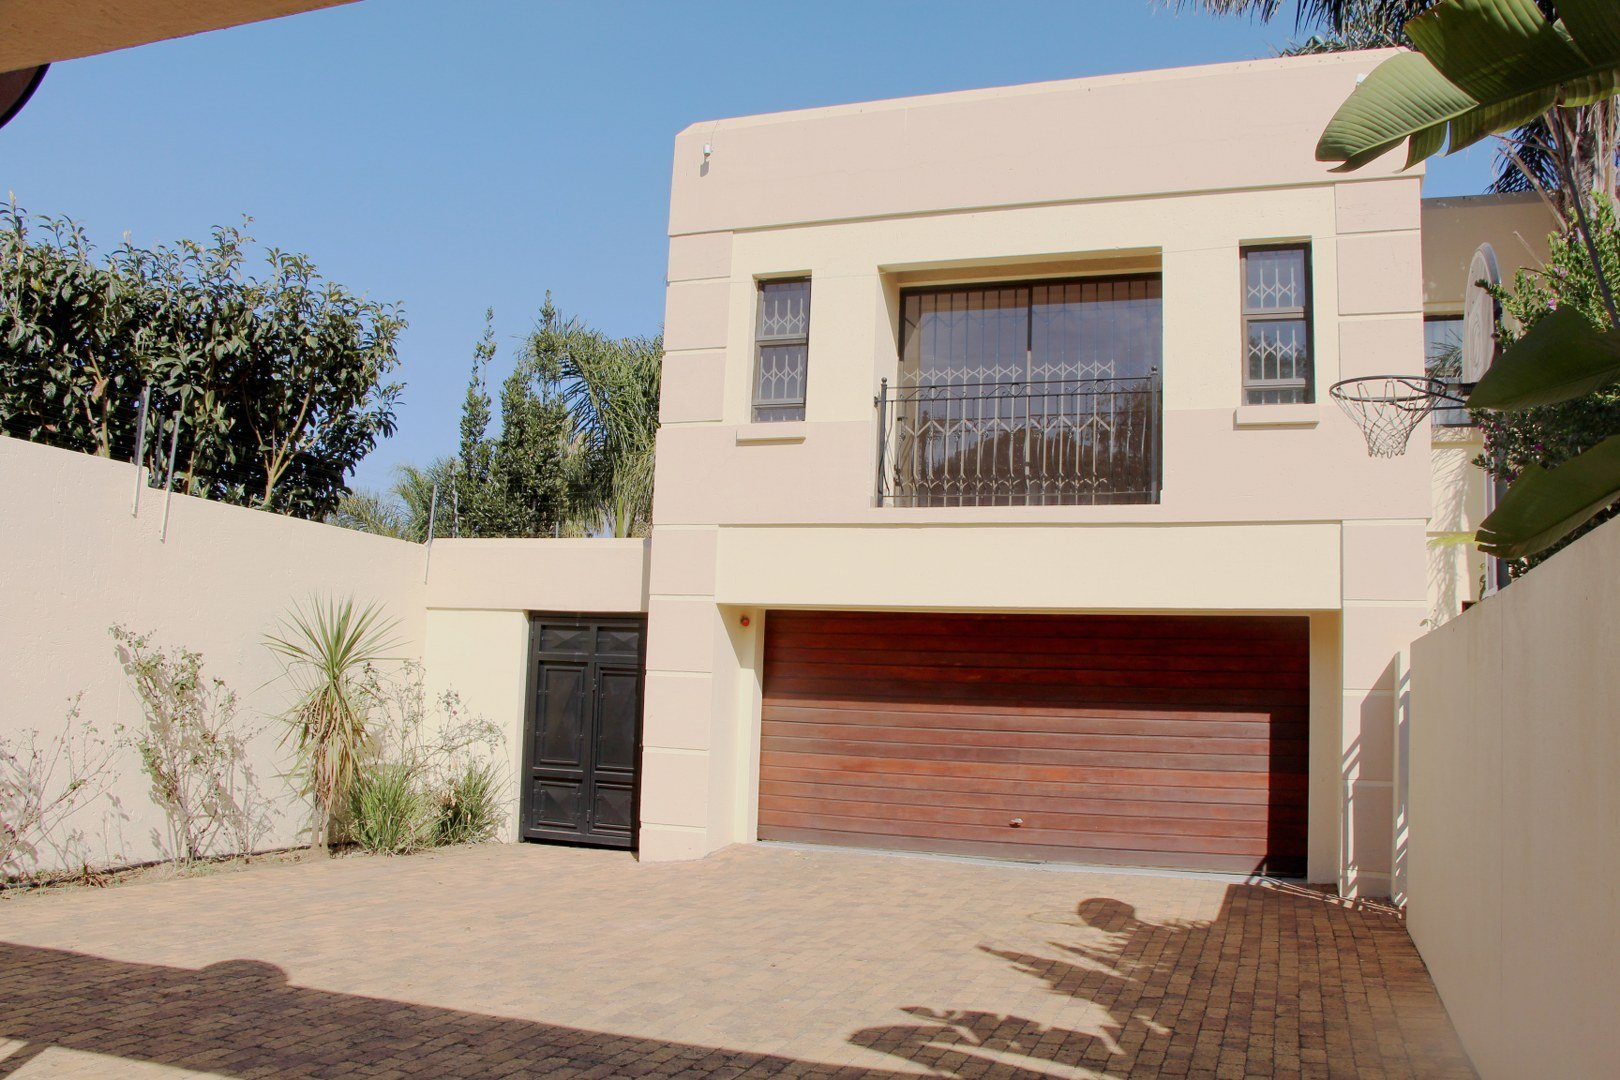 Alberton, Meyersdal Property  | Houses For Sale Meyersdal, Meyersdal, House 5 bedrooms property for sale Price:3,790,000